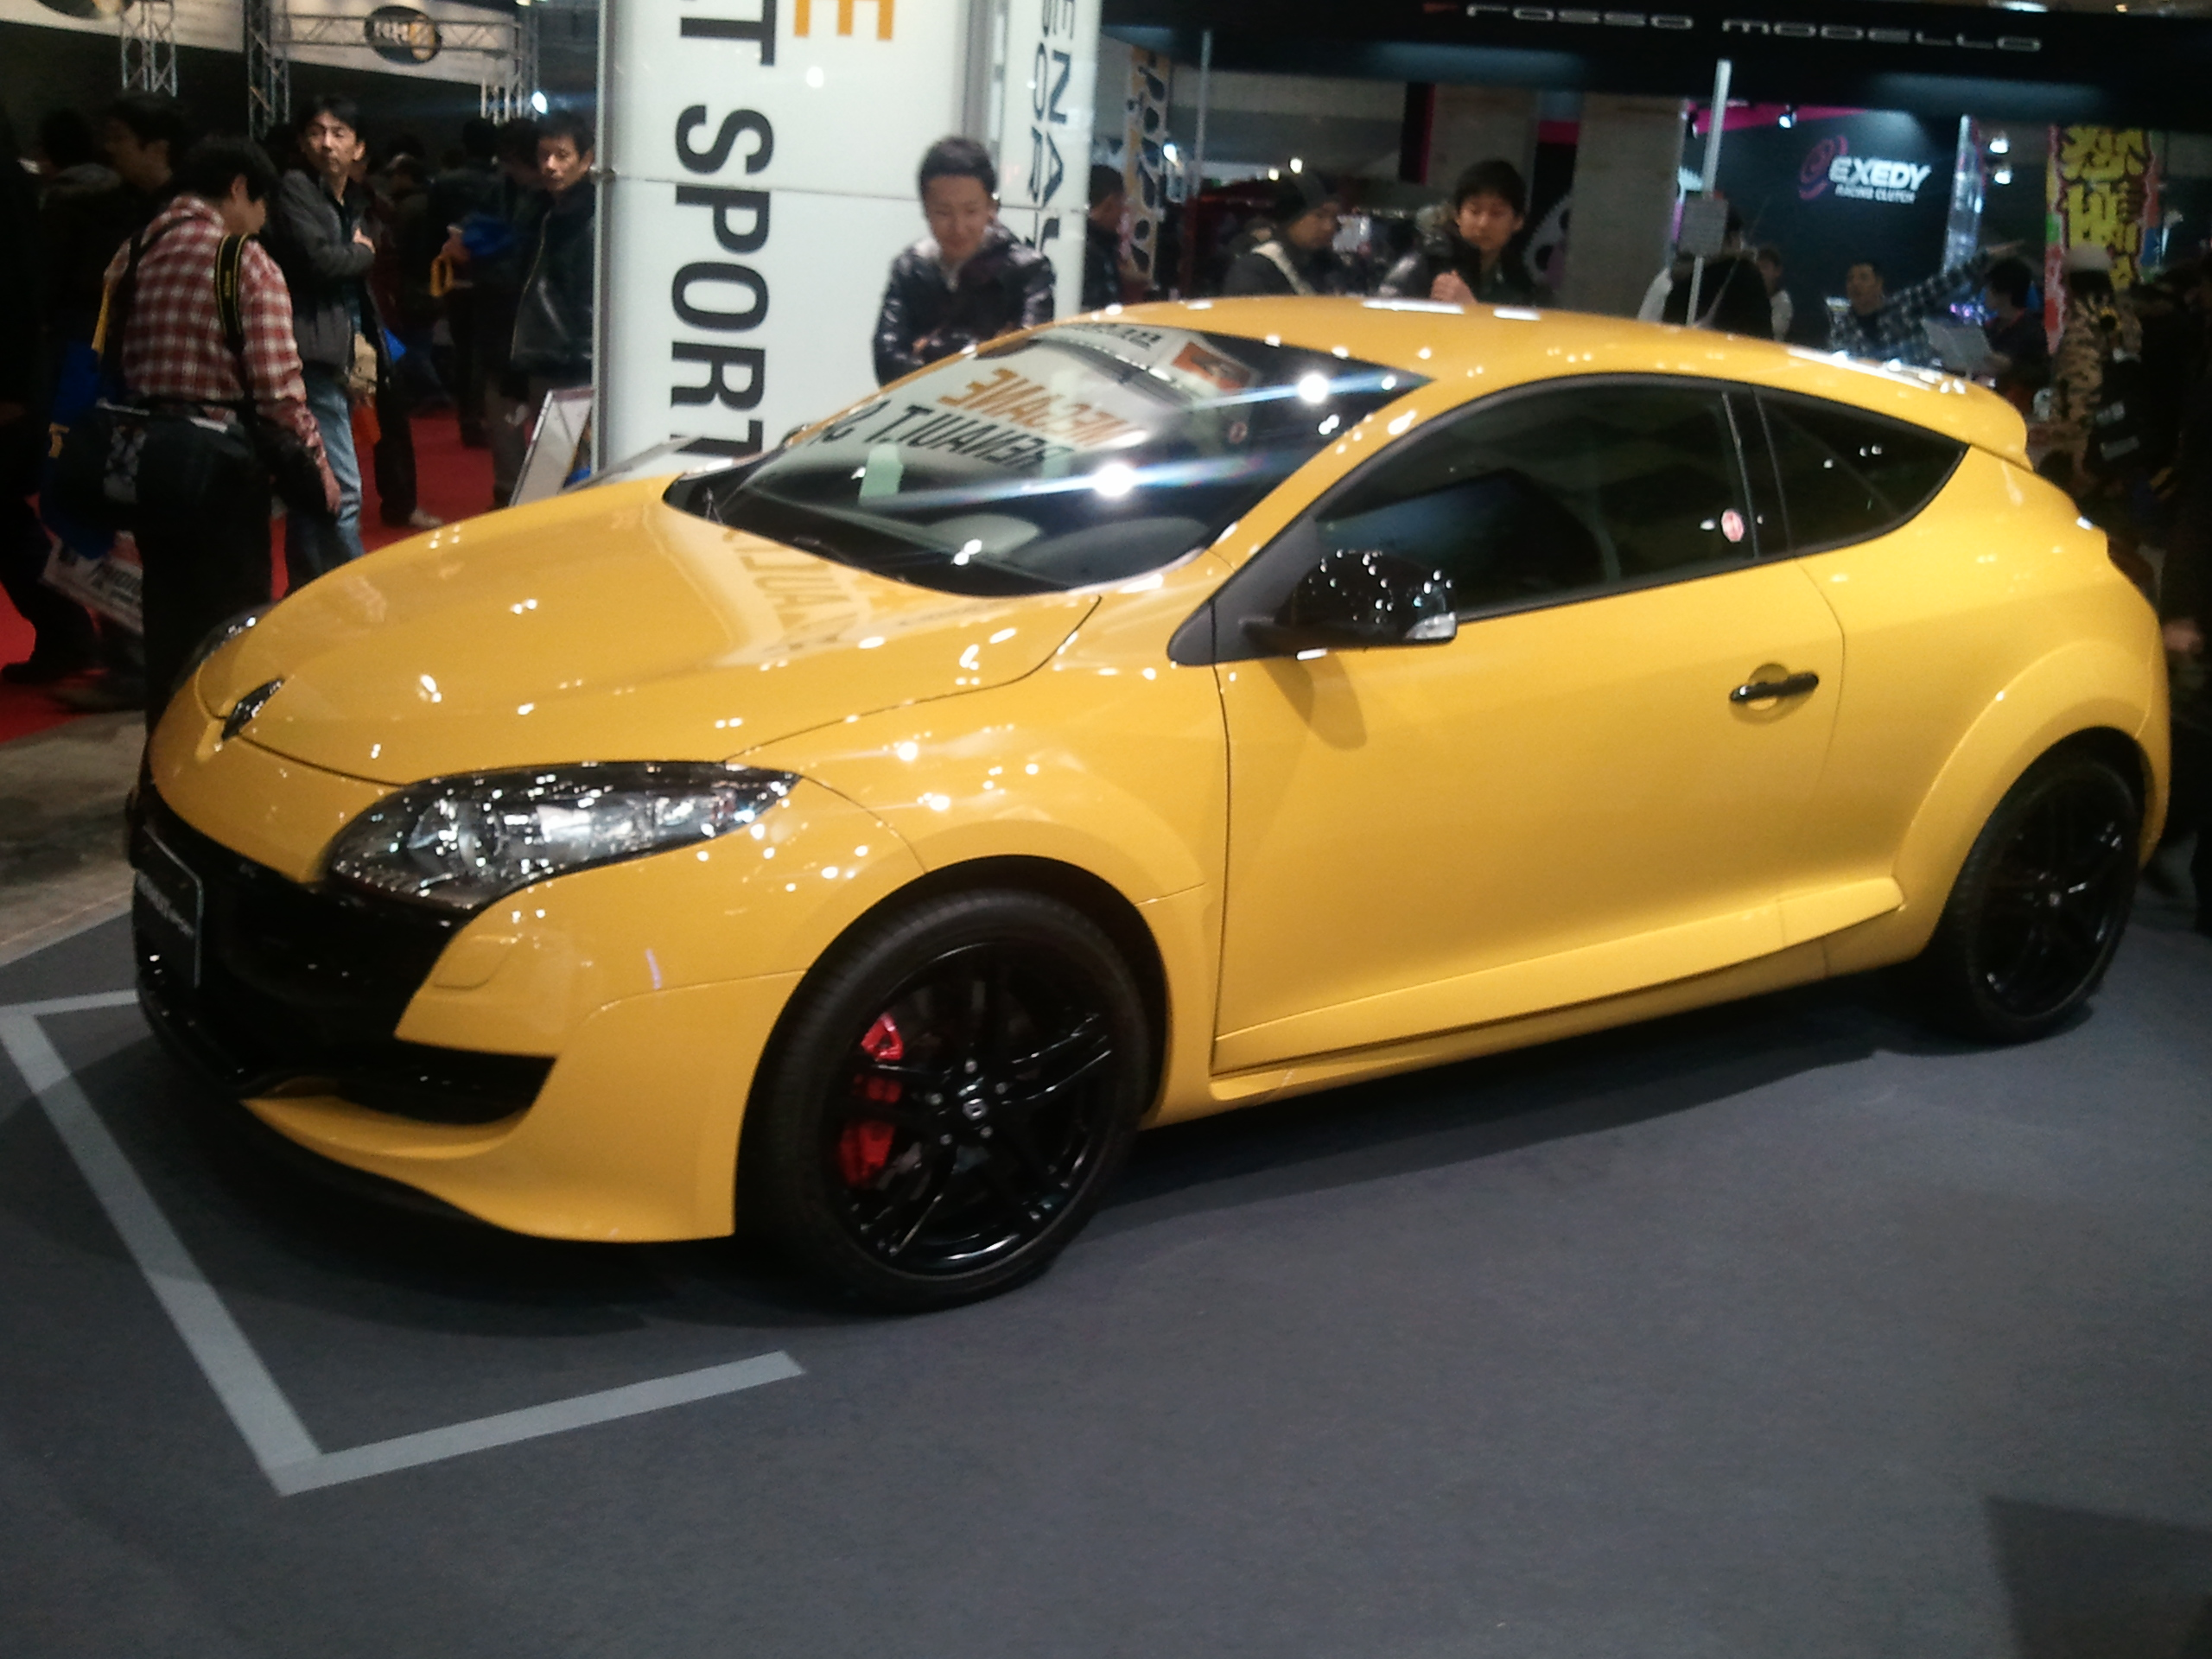 file renault megane rs front tokyo auto salon wikimedia commons. Black Bedroom Furniture Sets. Home Design Ideas